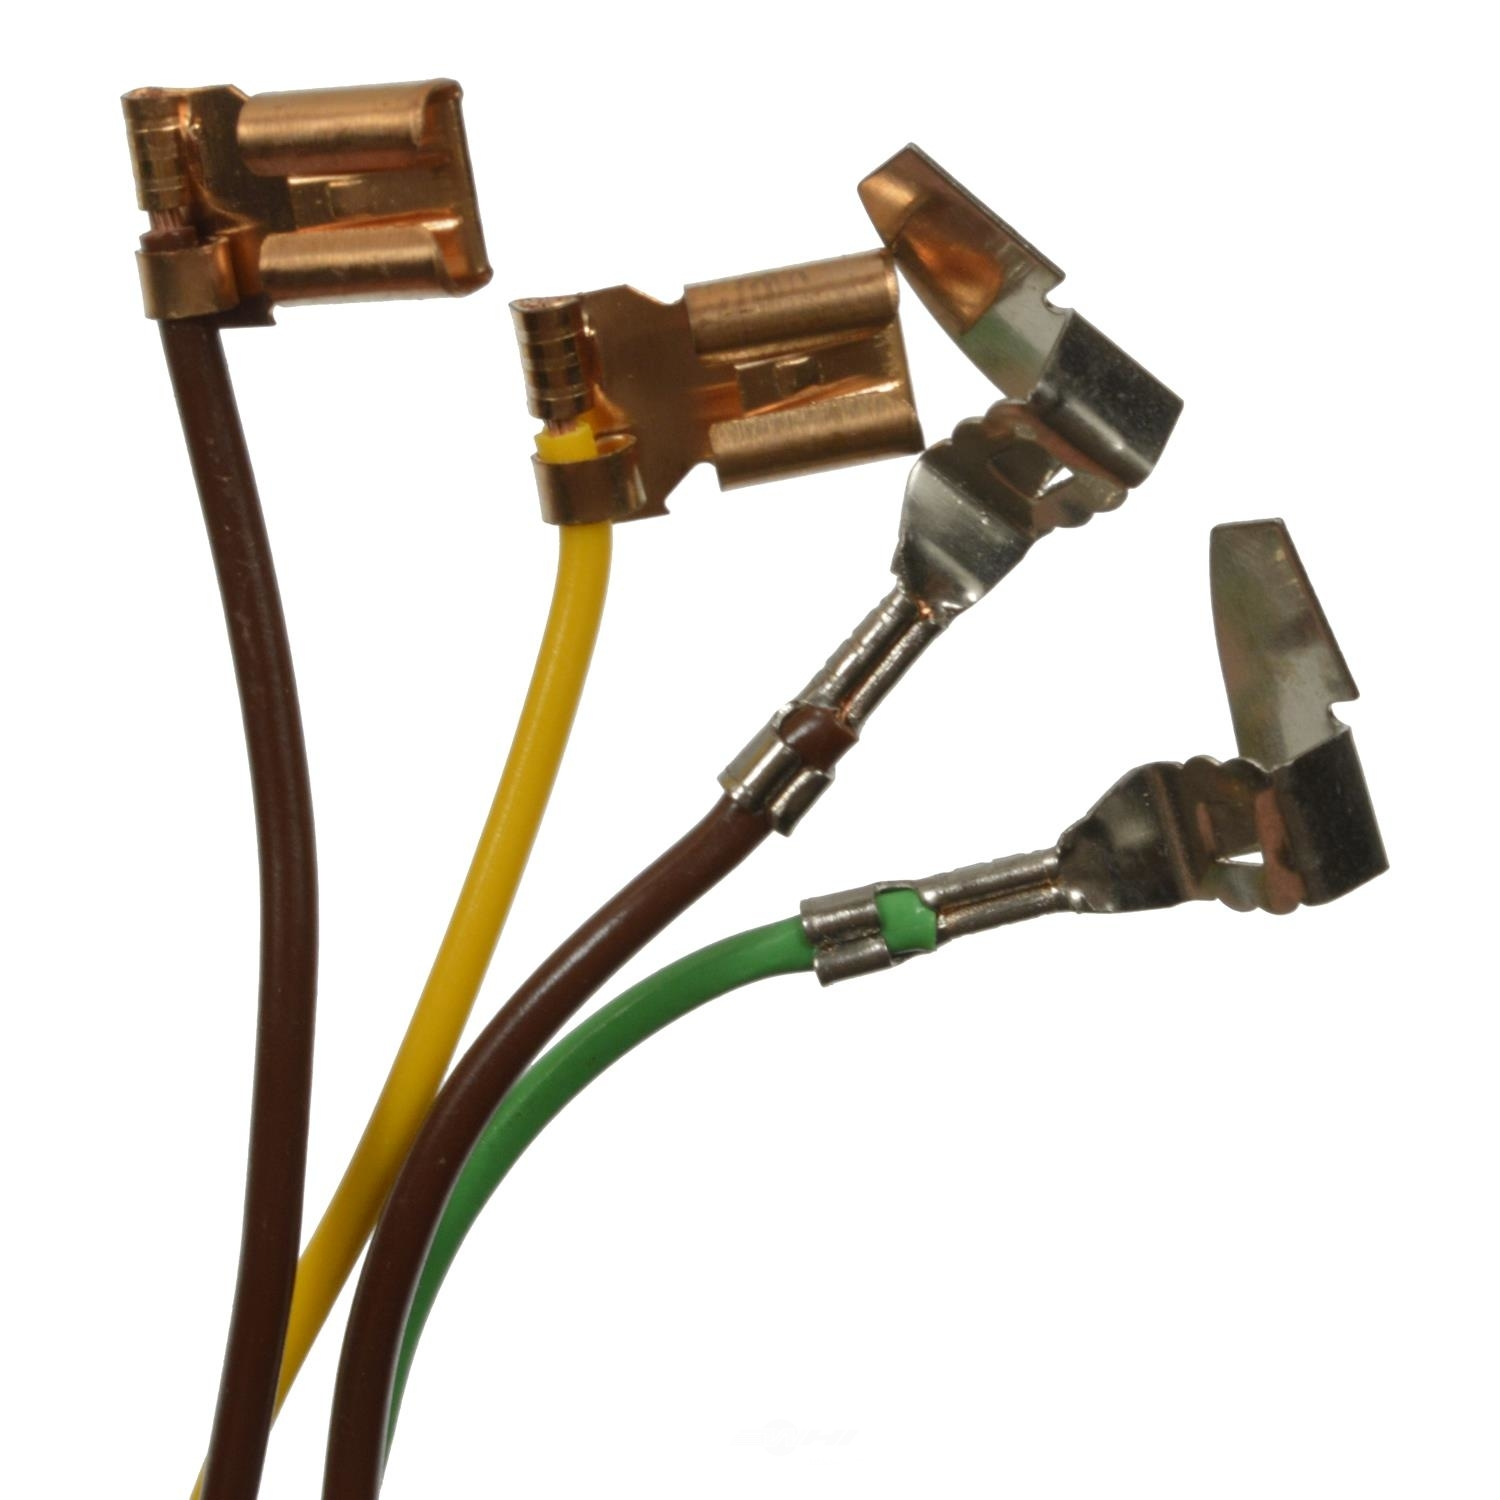 Techsmart Headlight Wiring Harness Part Number F90004 Headlamp Wire For Freightliner Tcs